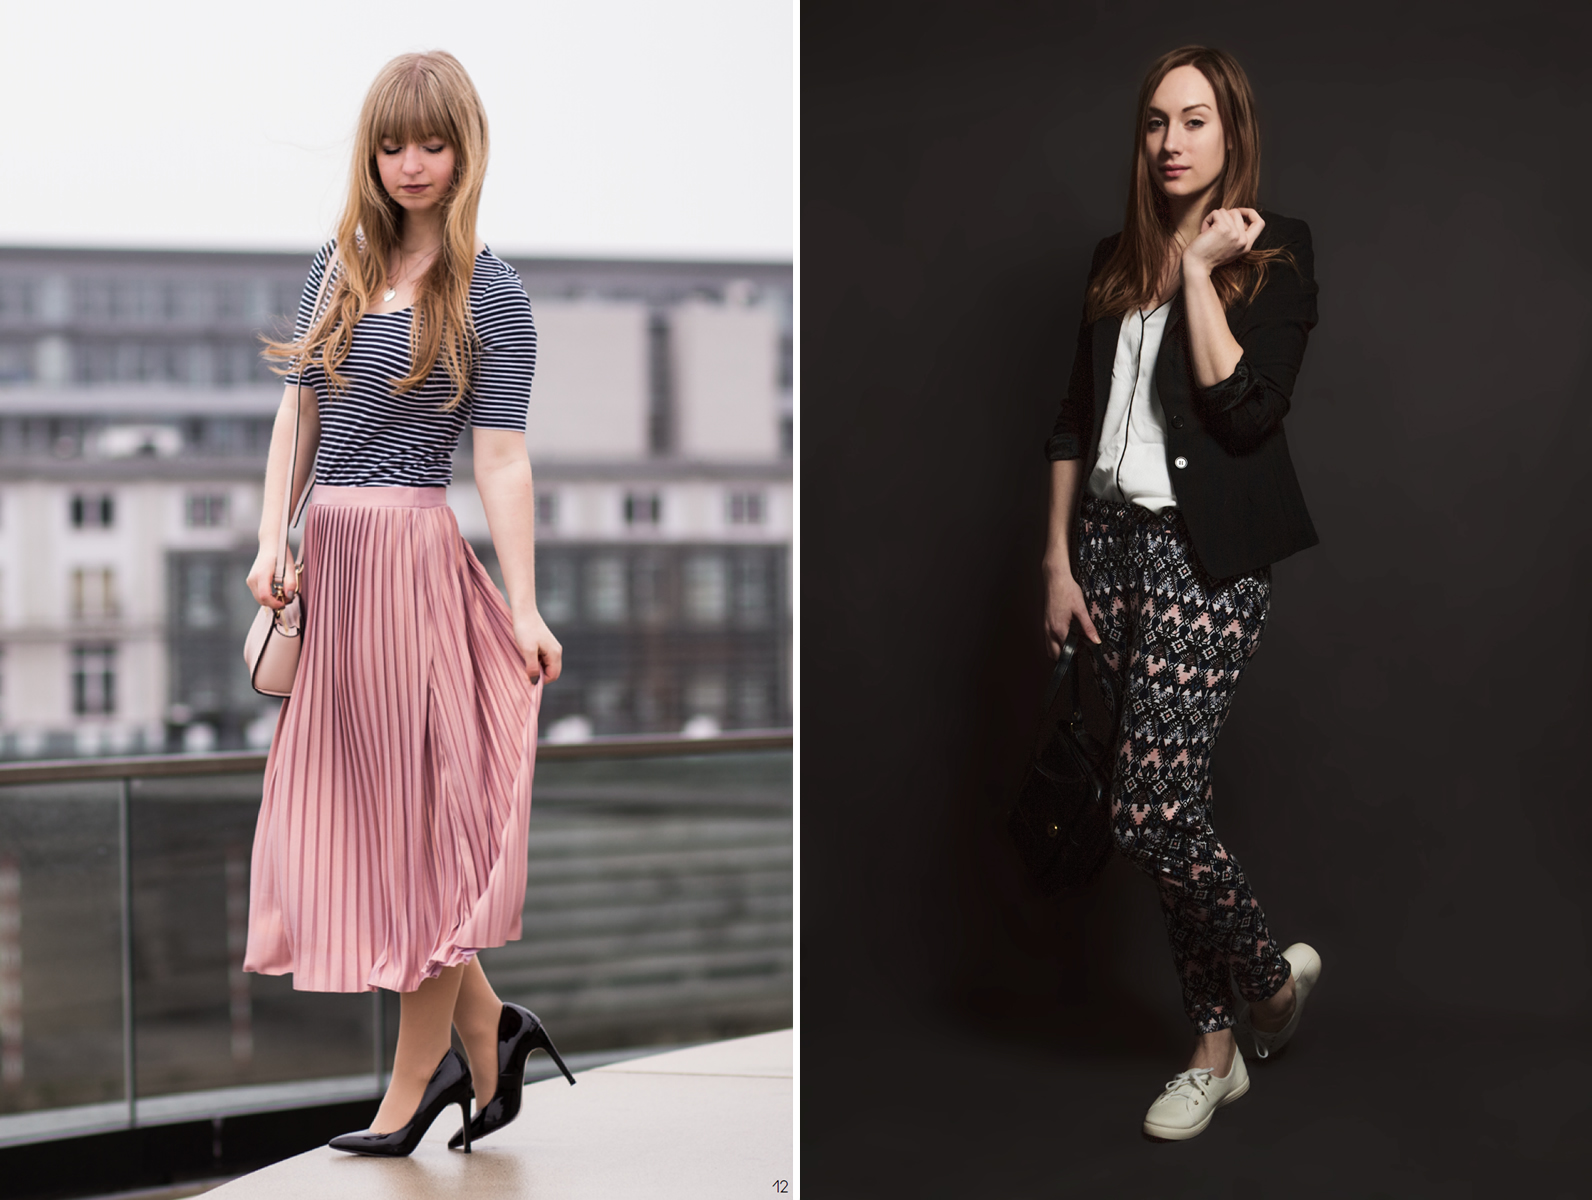 A Little Fashion Blogger-LookBook Frühjahr 2016 | A Little Fashion | https://www.filizity.com/fashion/a-little-fashion-blogger-lookbook-fruehjahr-2016